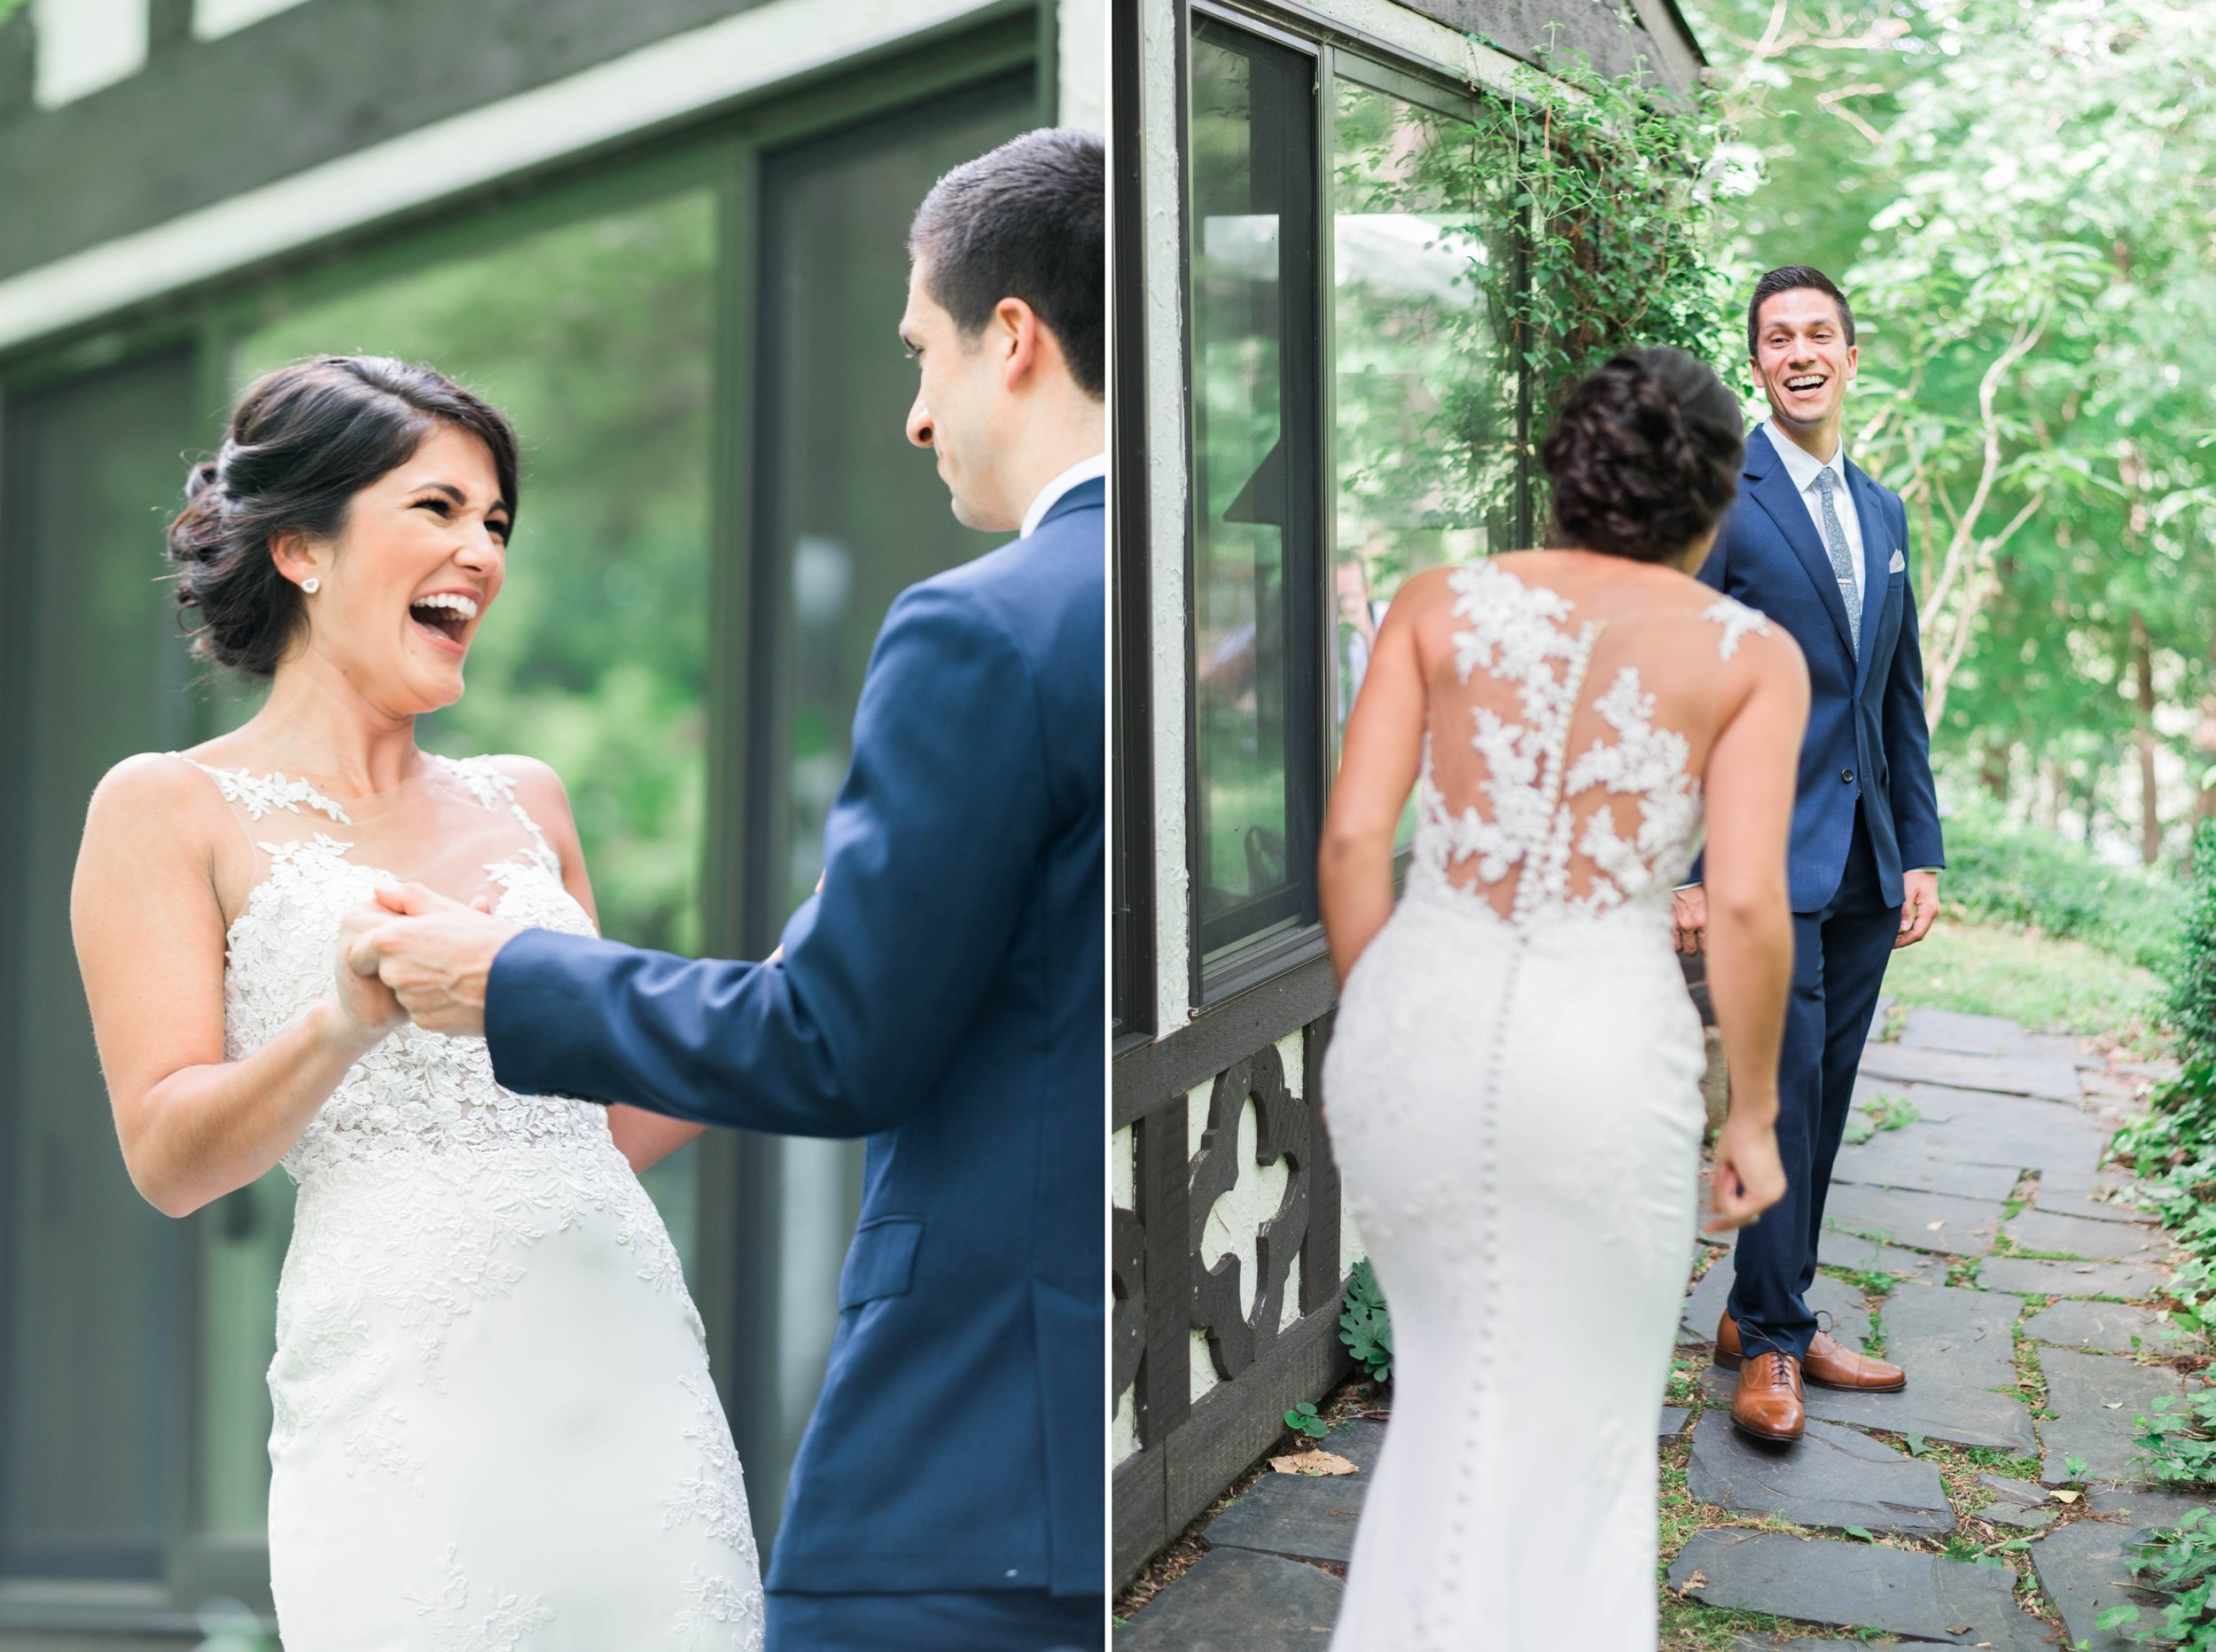 Williamsburgvawedding_backyardwedding_virginiaweddingphotographer_lynchburgweddingphotographer_PaulAliya 23.jpg